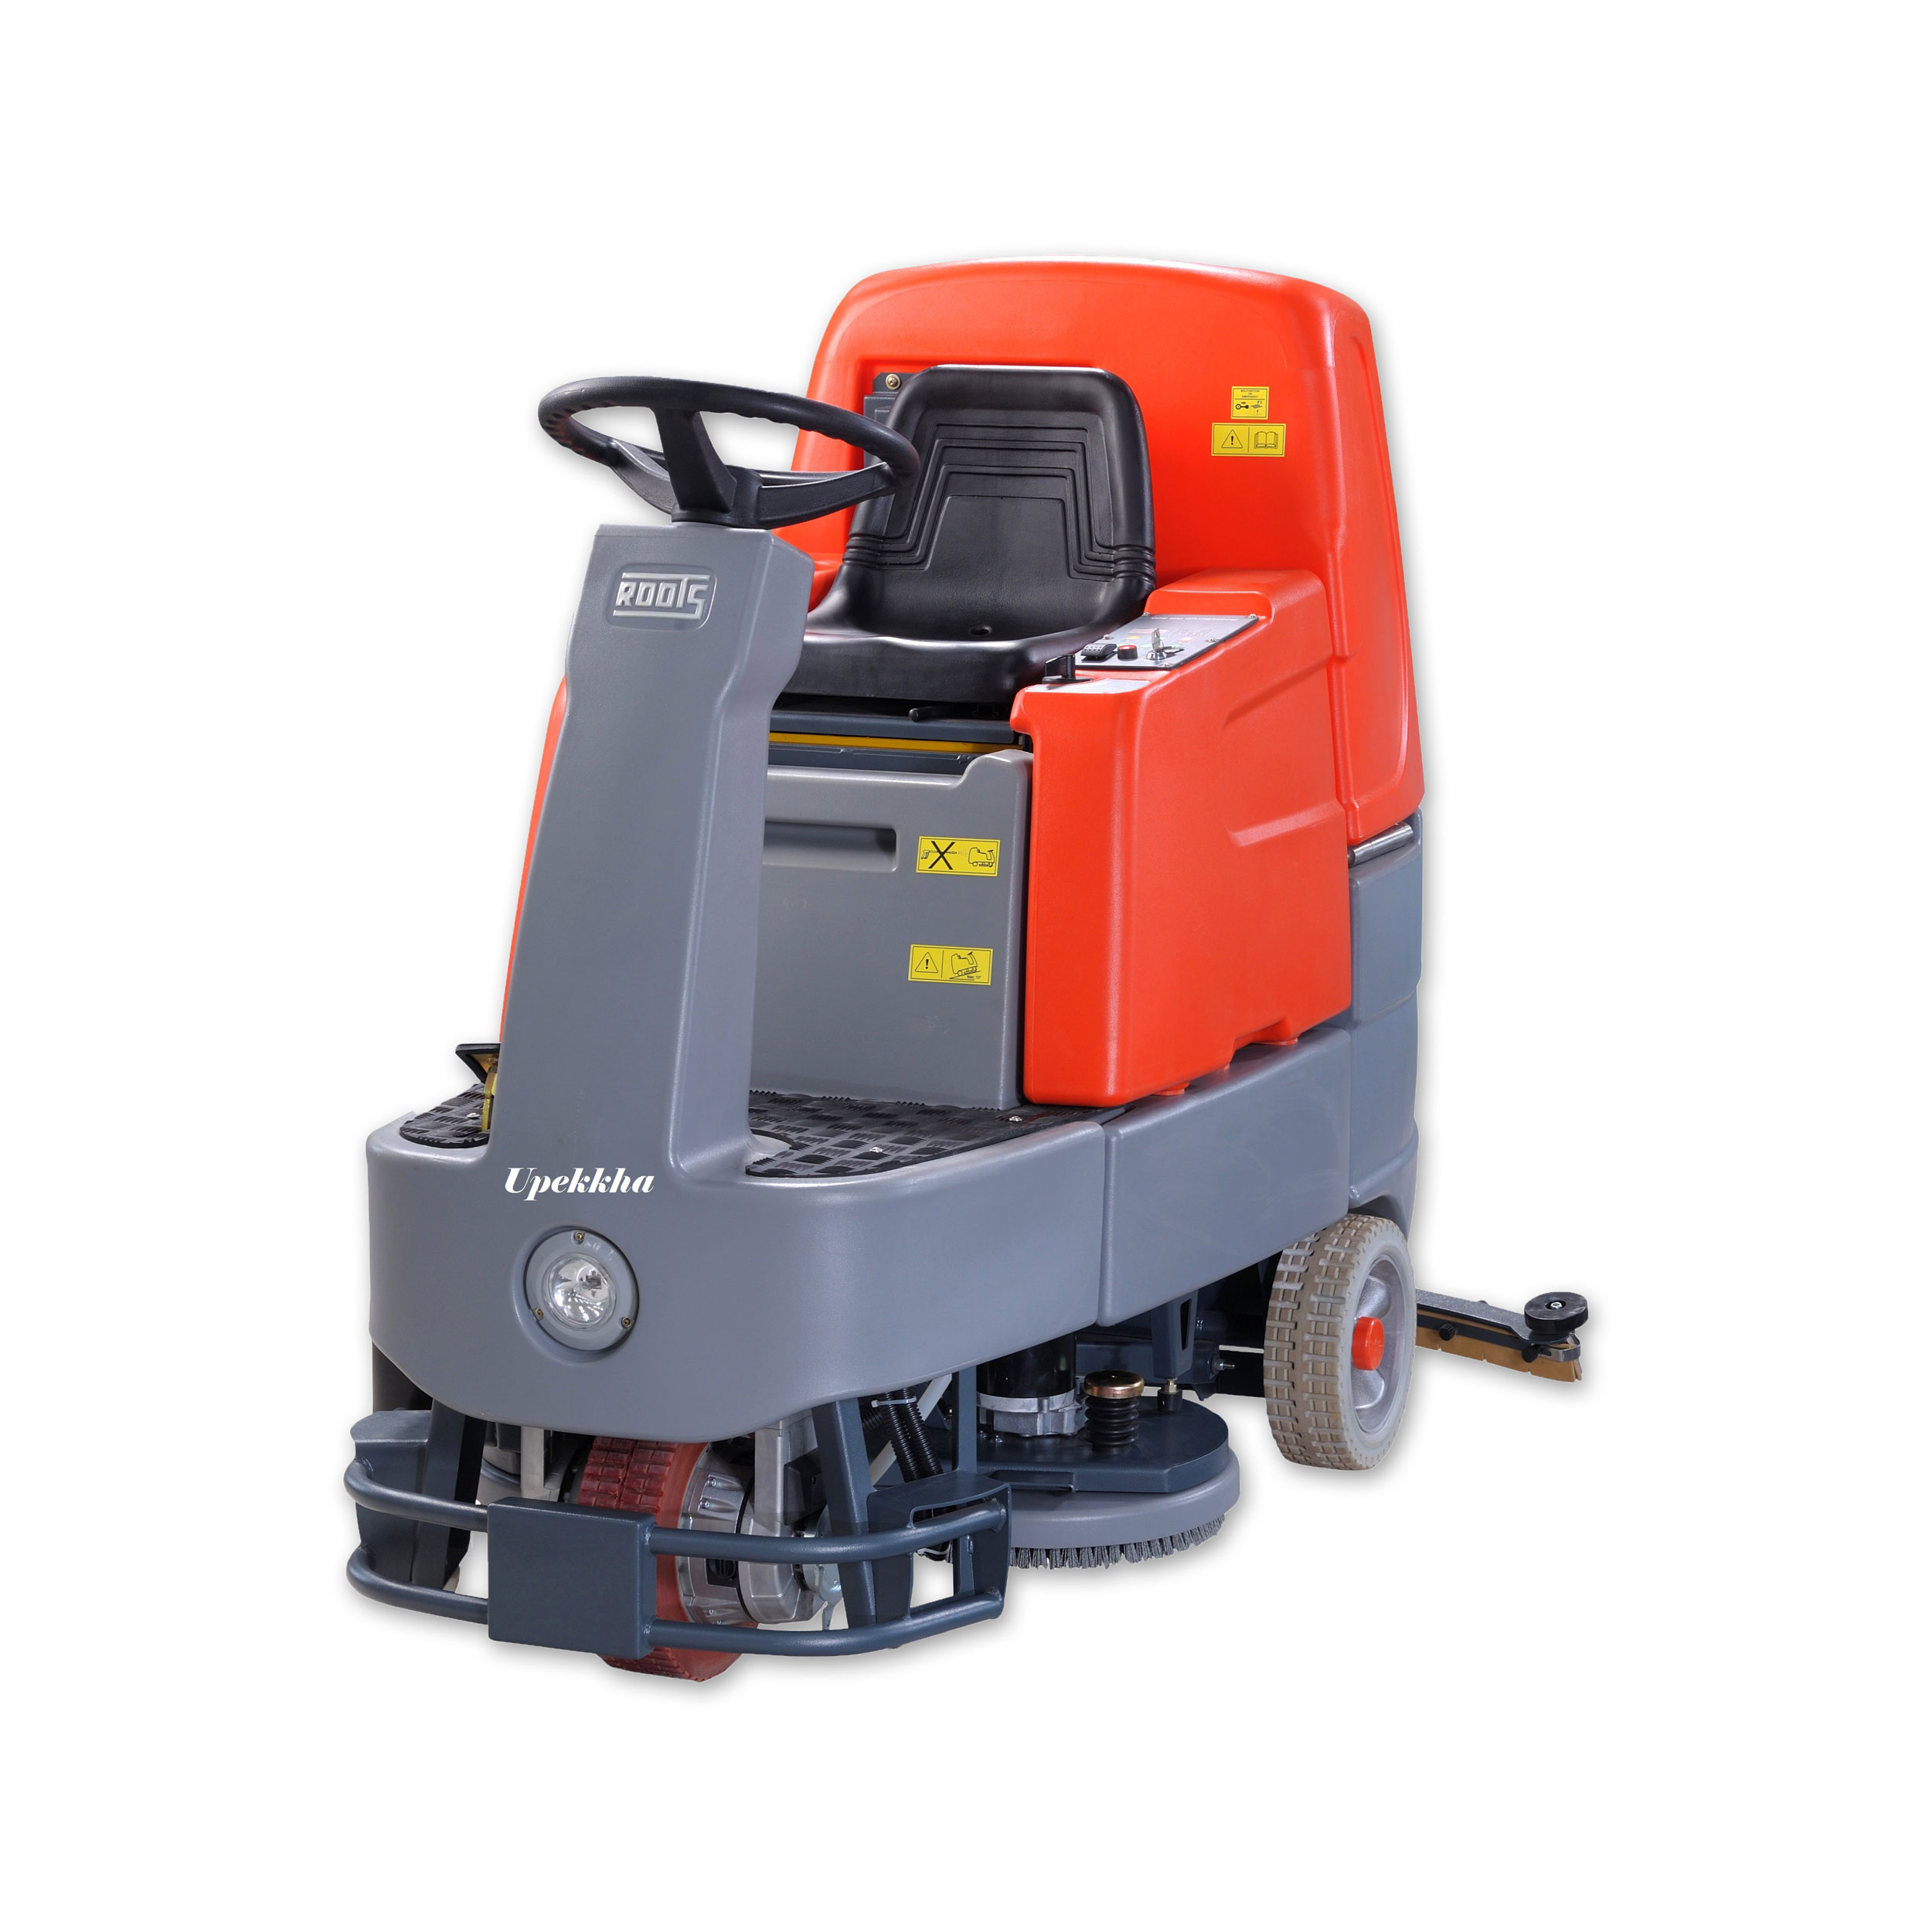 Upekkha™ RootsScrub RB800   Upekkha RootsScrub RB 800 is a battery operated ride on scrubber drier that has the ability to clean up to 4,800 sq meters/hour. Compact in design and he operator wields absolute manoeuvrability!